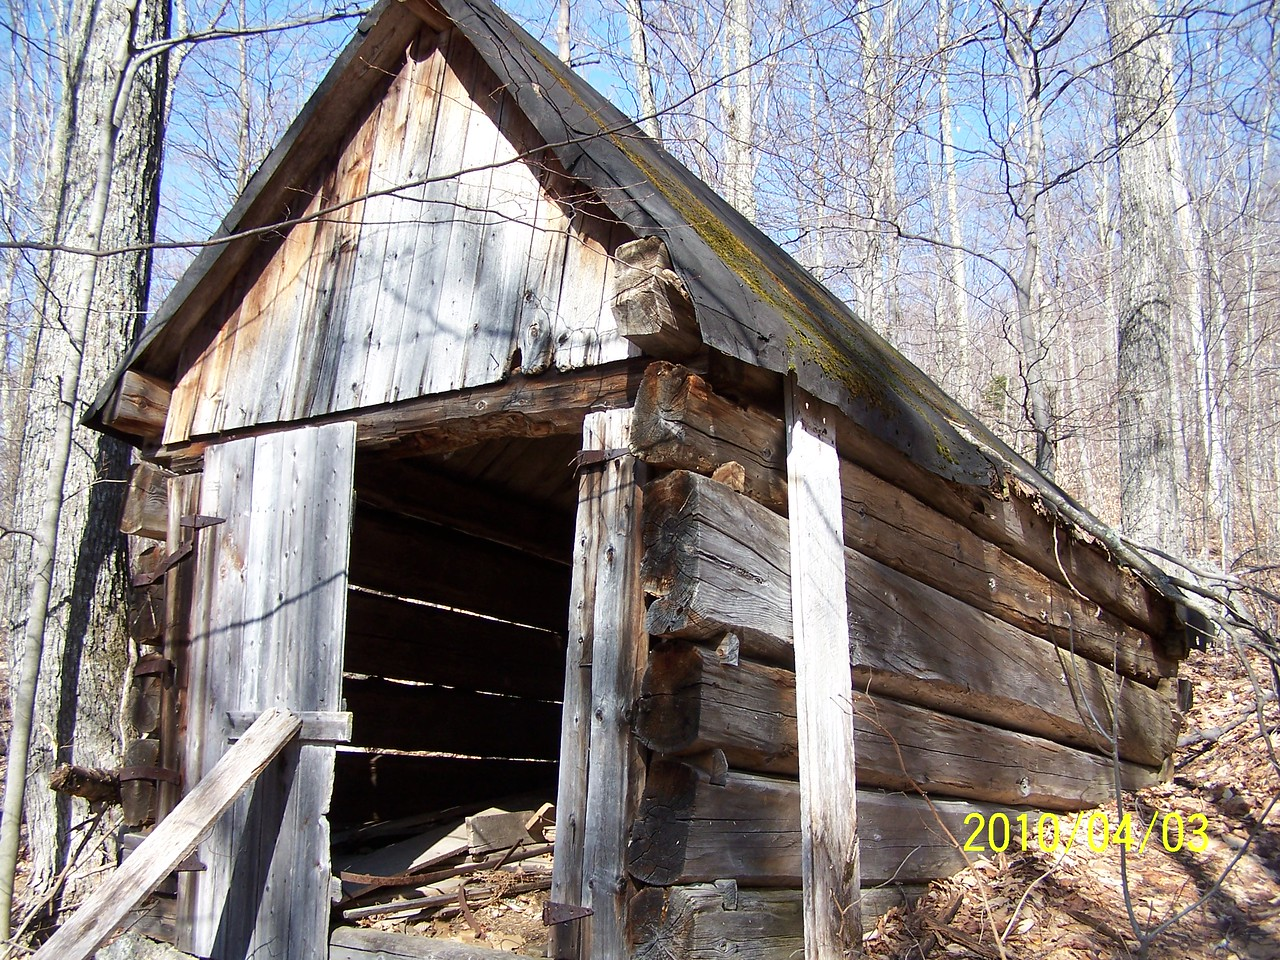 Old sugar shack I think. Too small to be a cabin.